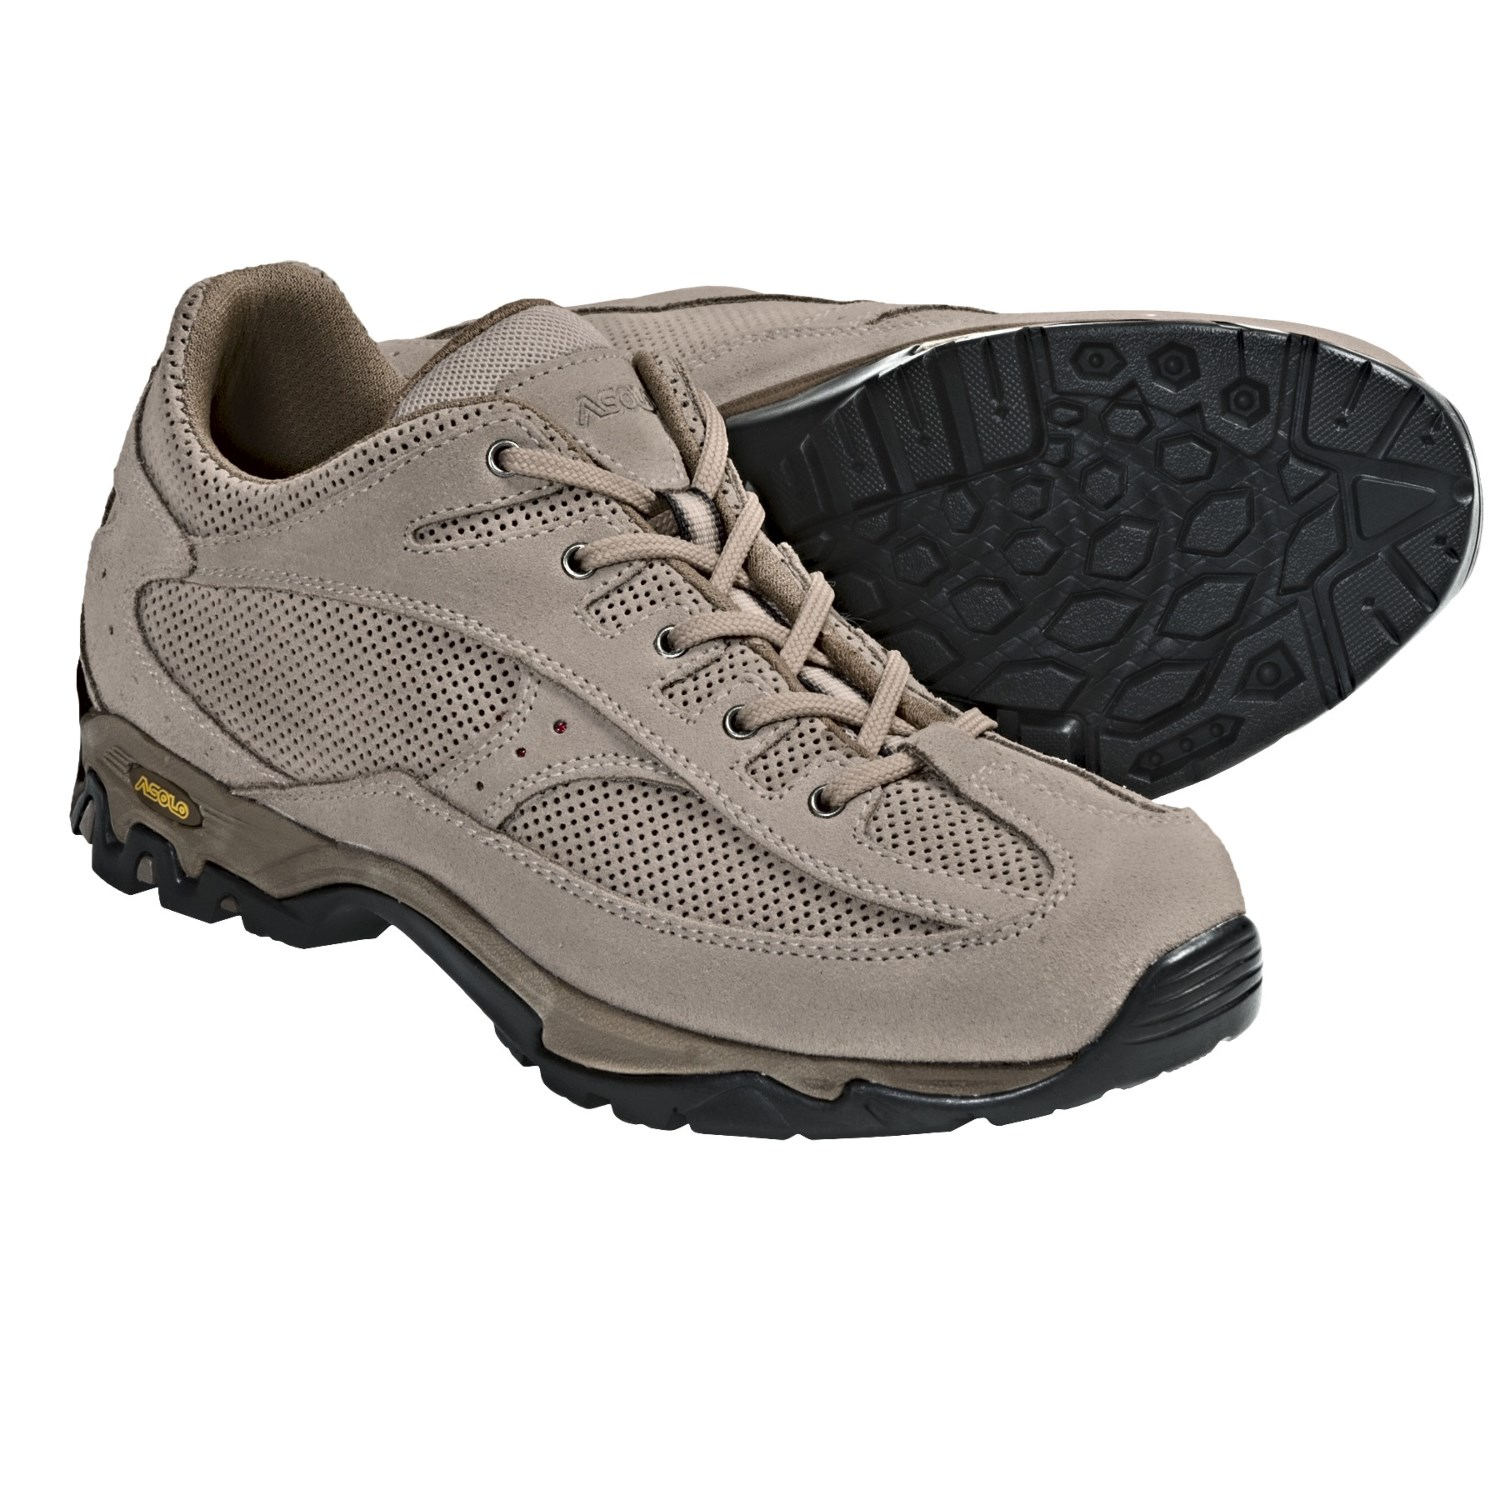 Asolo Approach Shoes Reviews